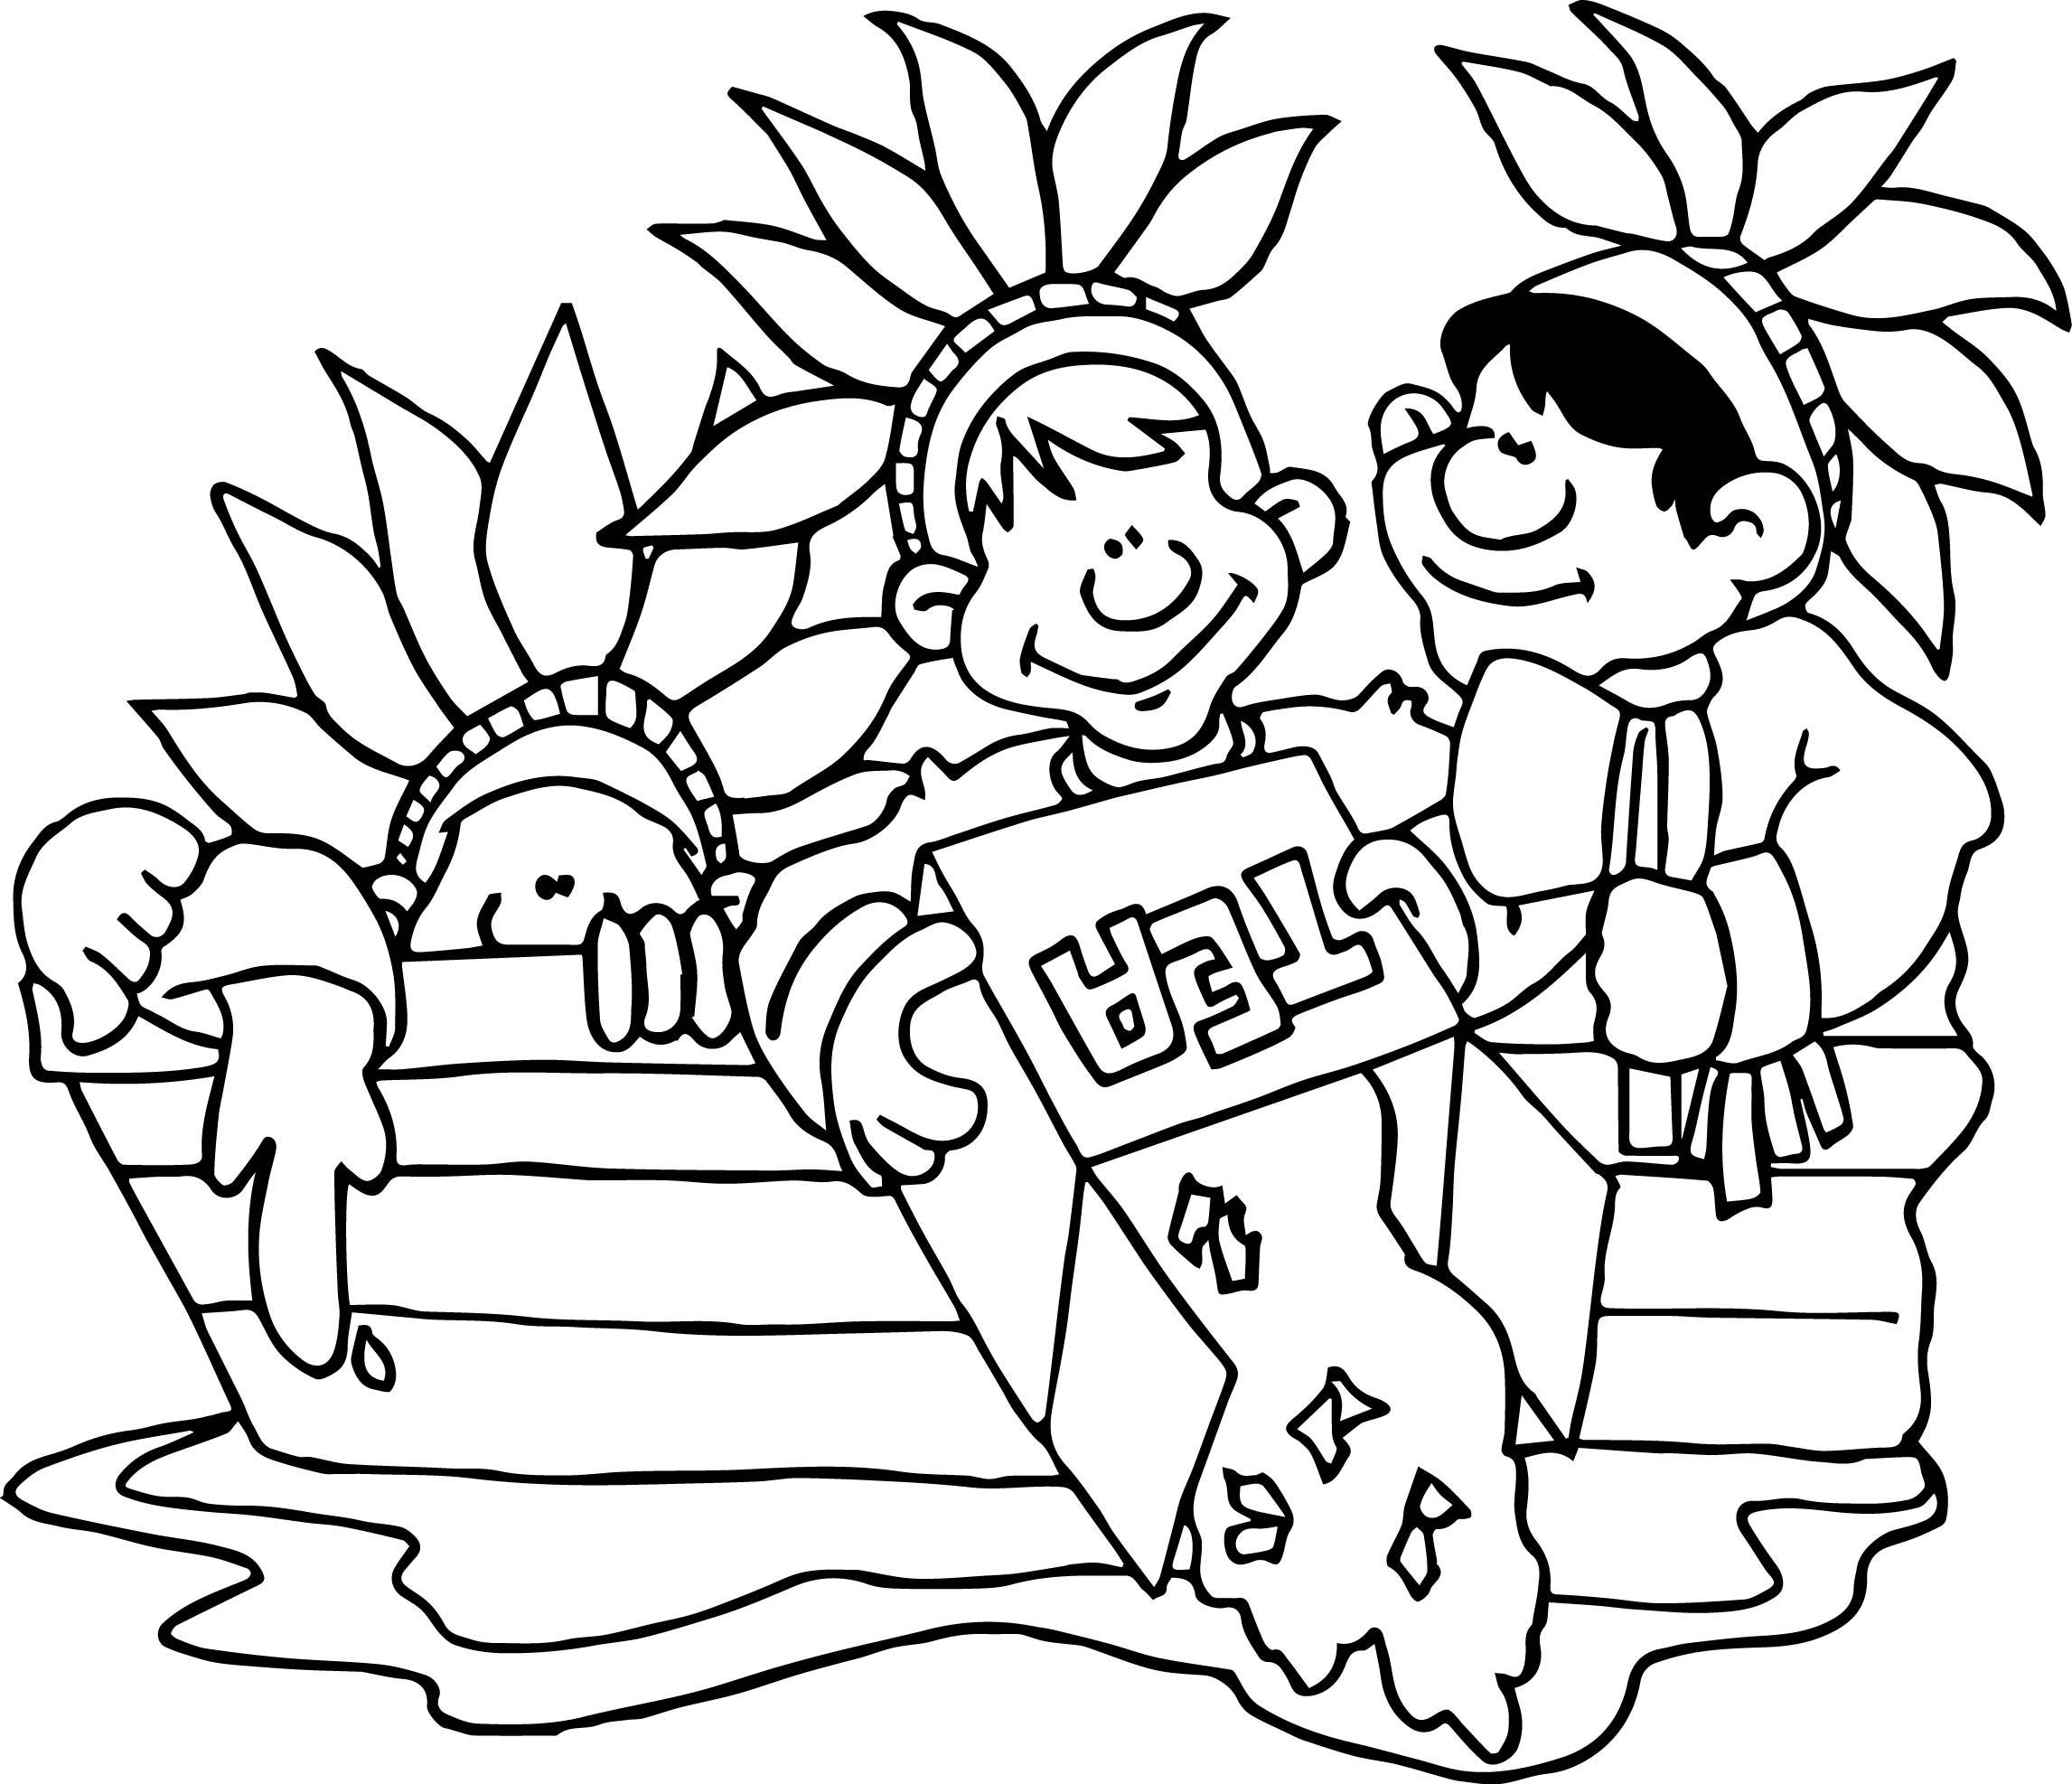 boston tea party drawing at getdrawings com free for personal use